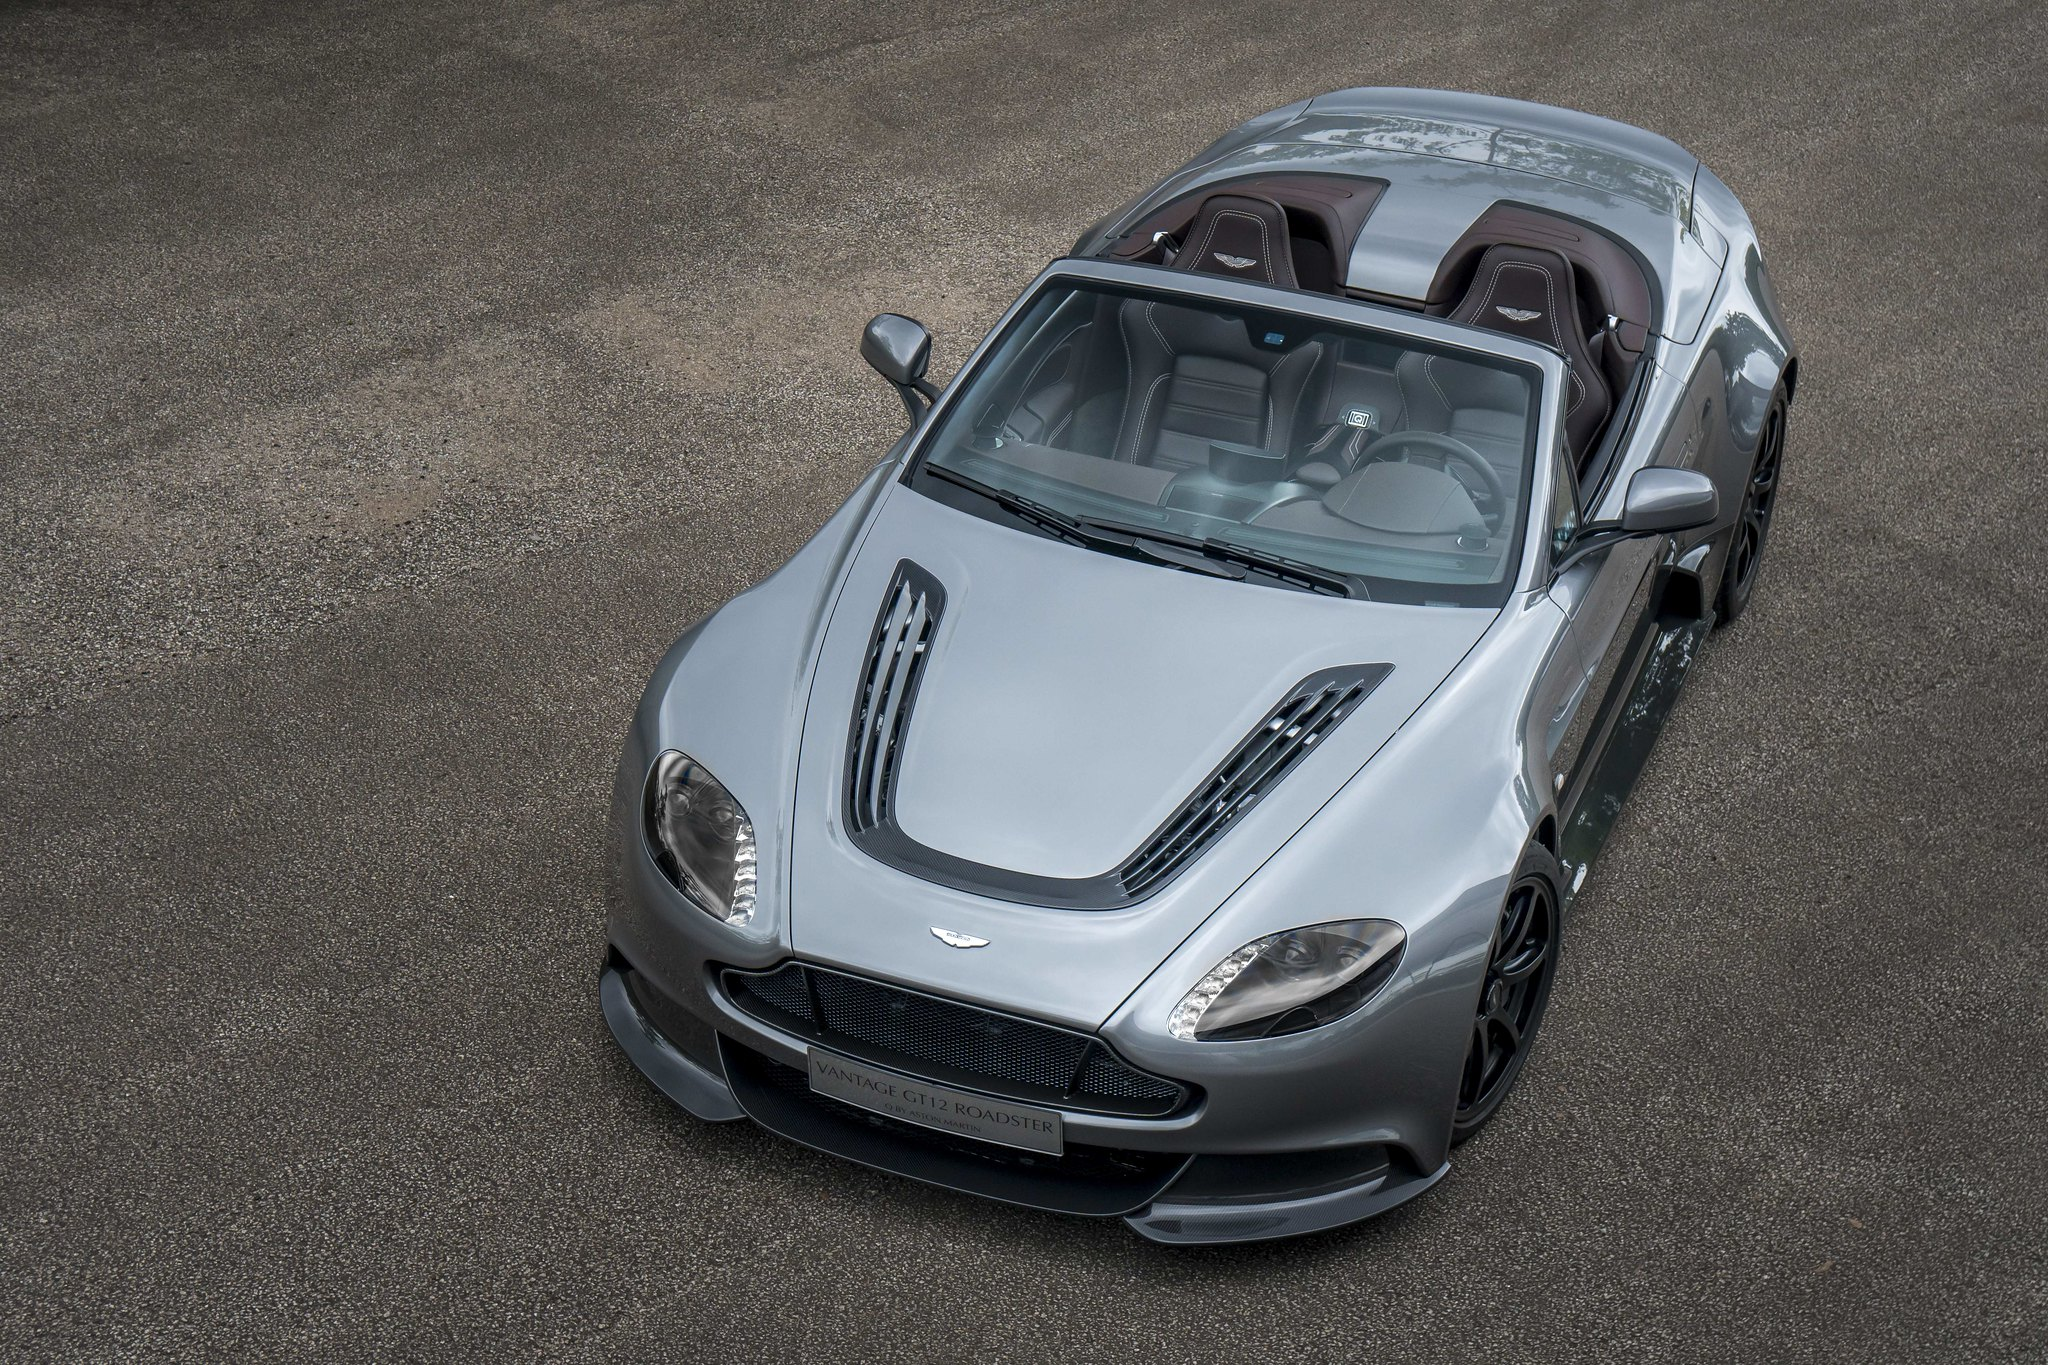 This is the Aston Martin Vantage GT12 Roadster